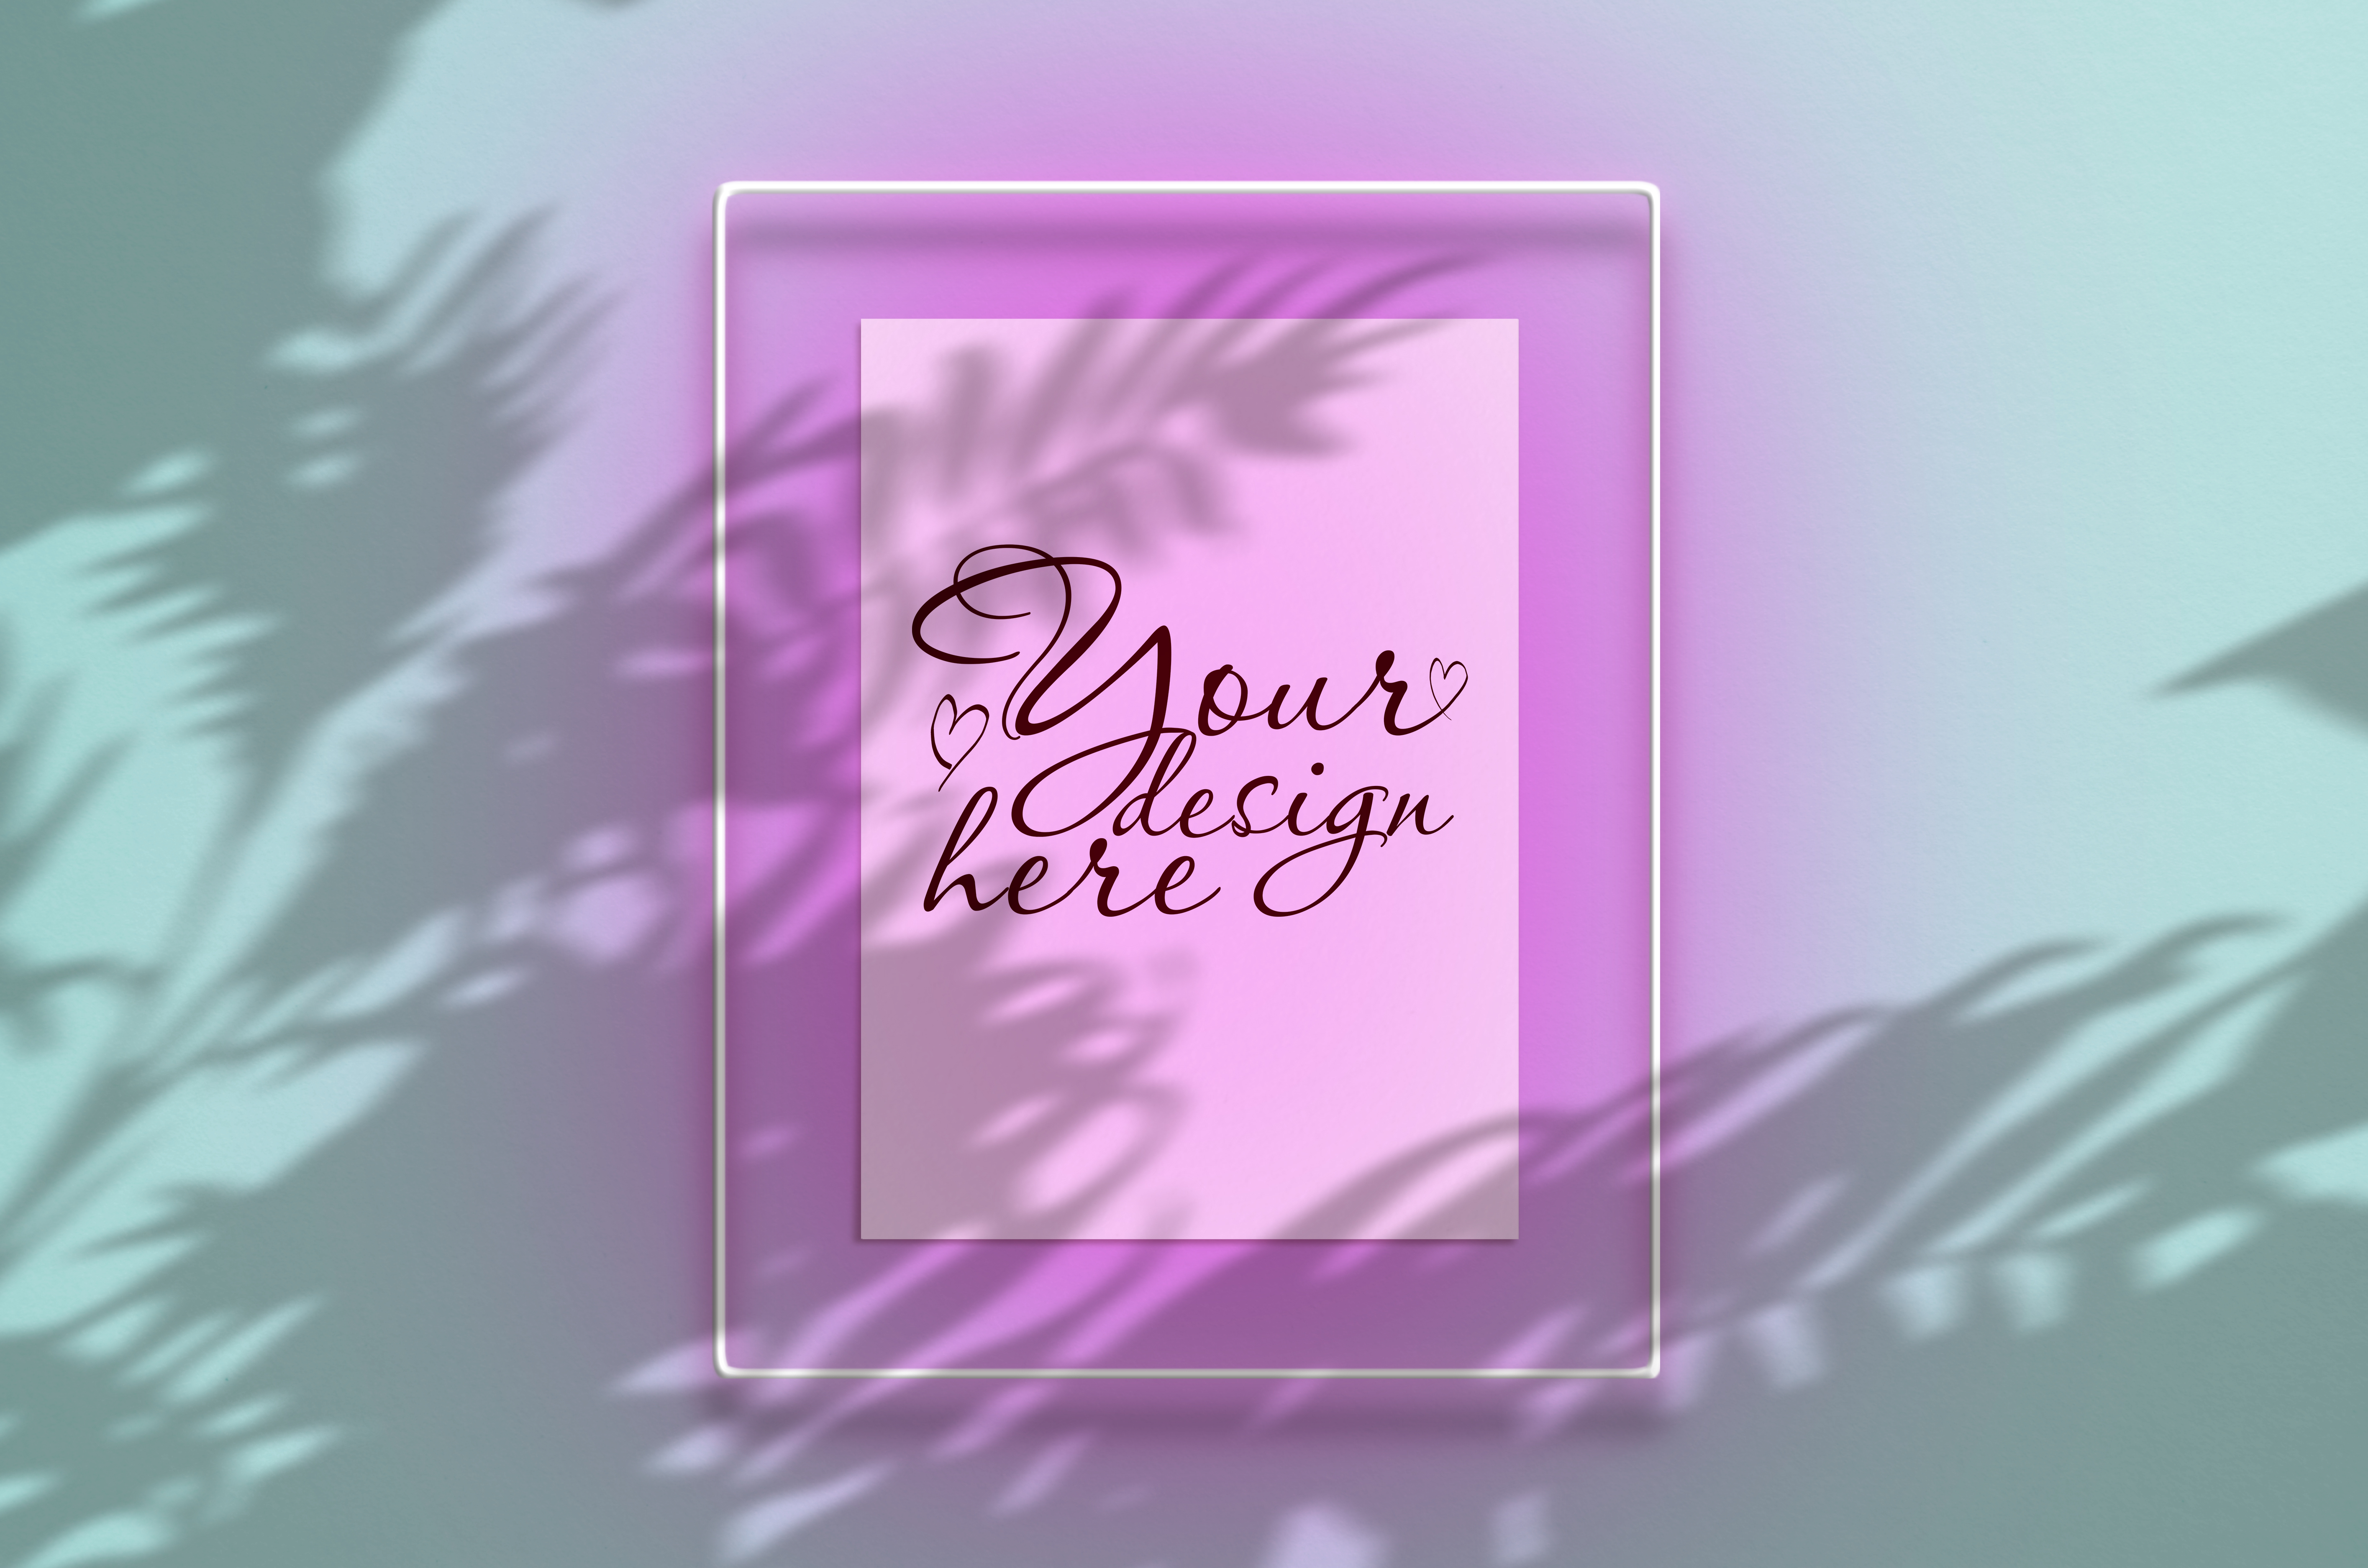 Download Free Mockup Poster In A Neon Pink Frame Graphic By Natalia Arkusha for Cricut Explore, Silhouette and other cutting machines.